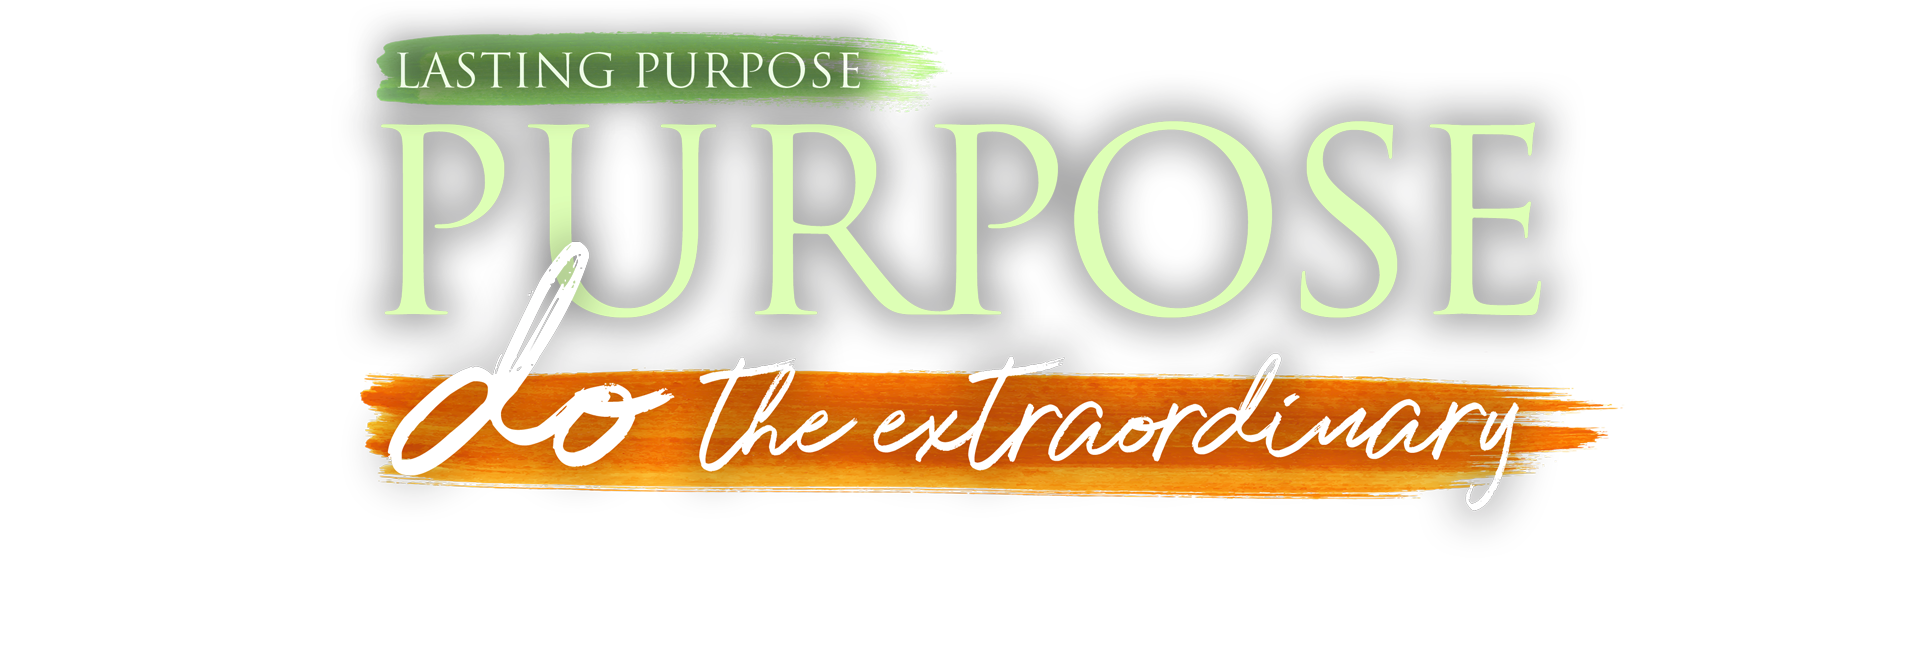 Lasting Purpose. To Do the Extraordinary